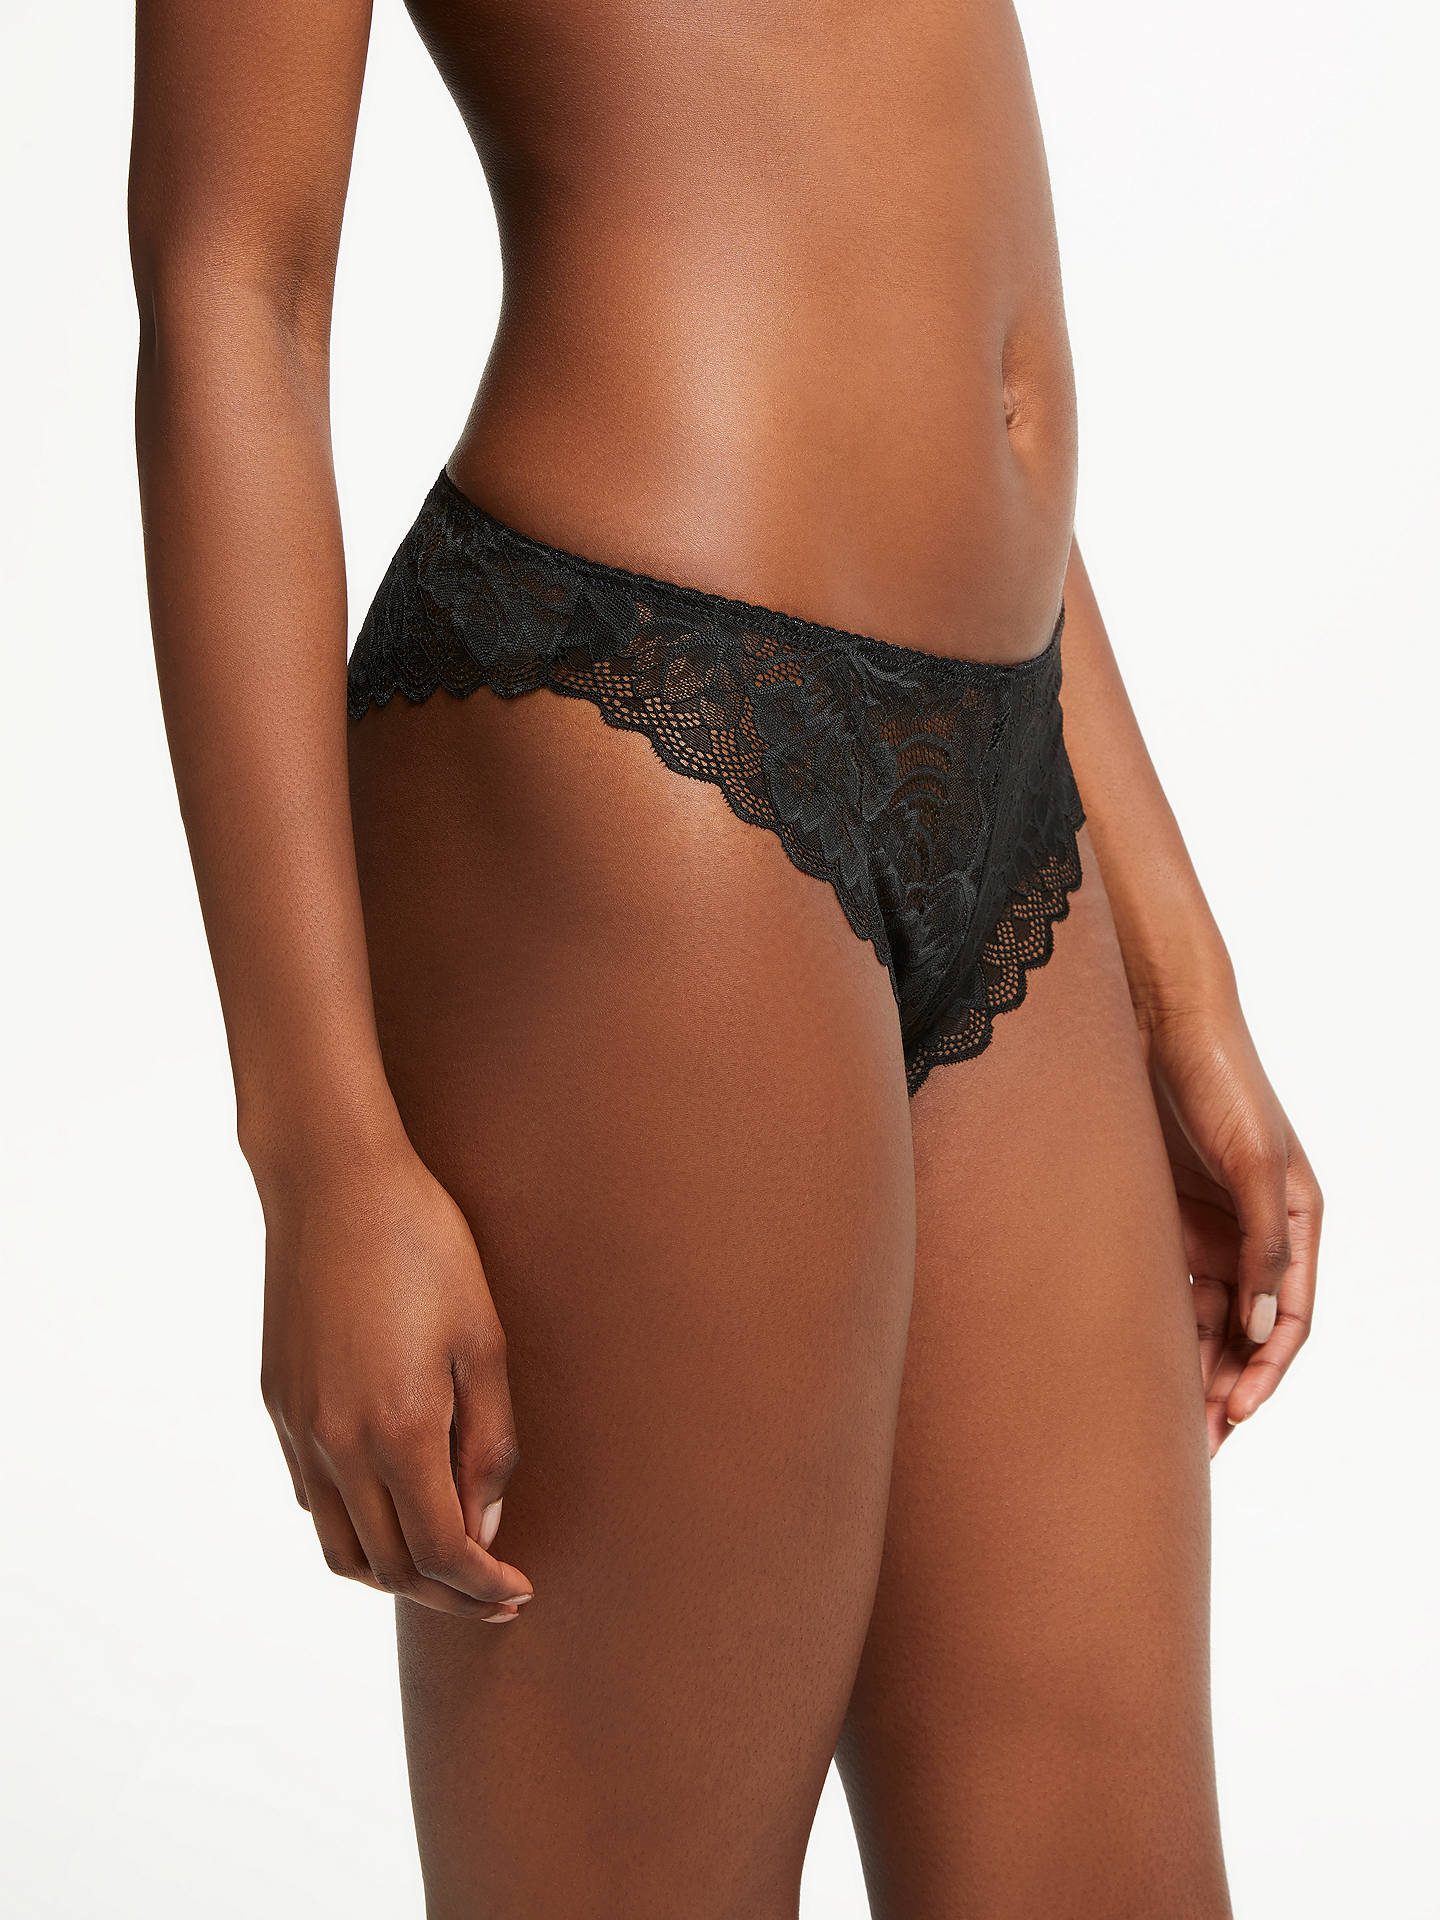 Buy AND/OR Lace Brazilian Thong, Black, 8 Online at johnlewis.com